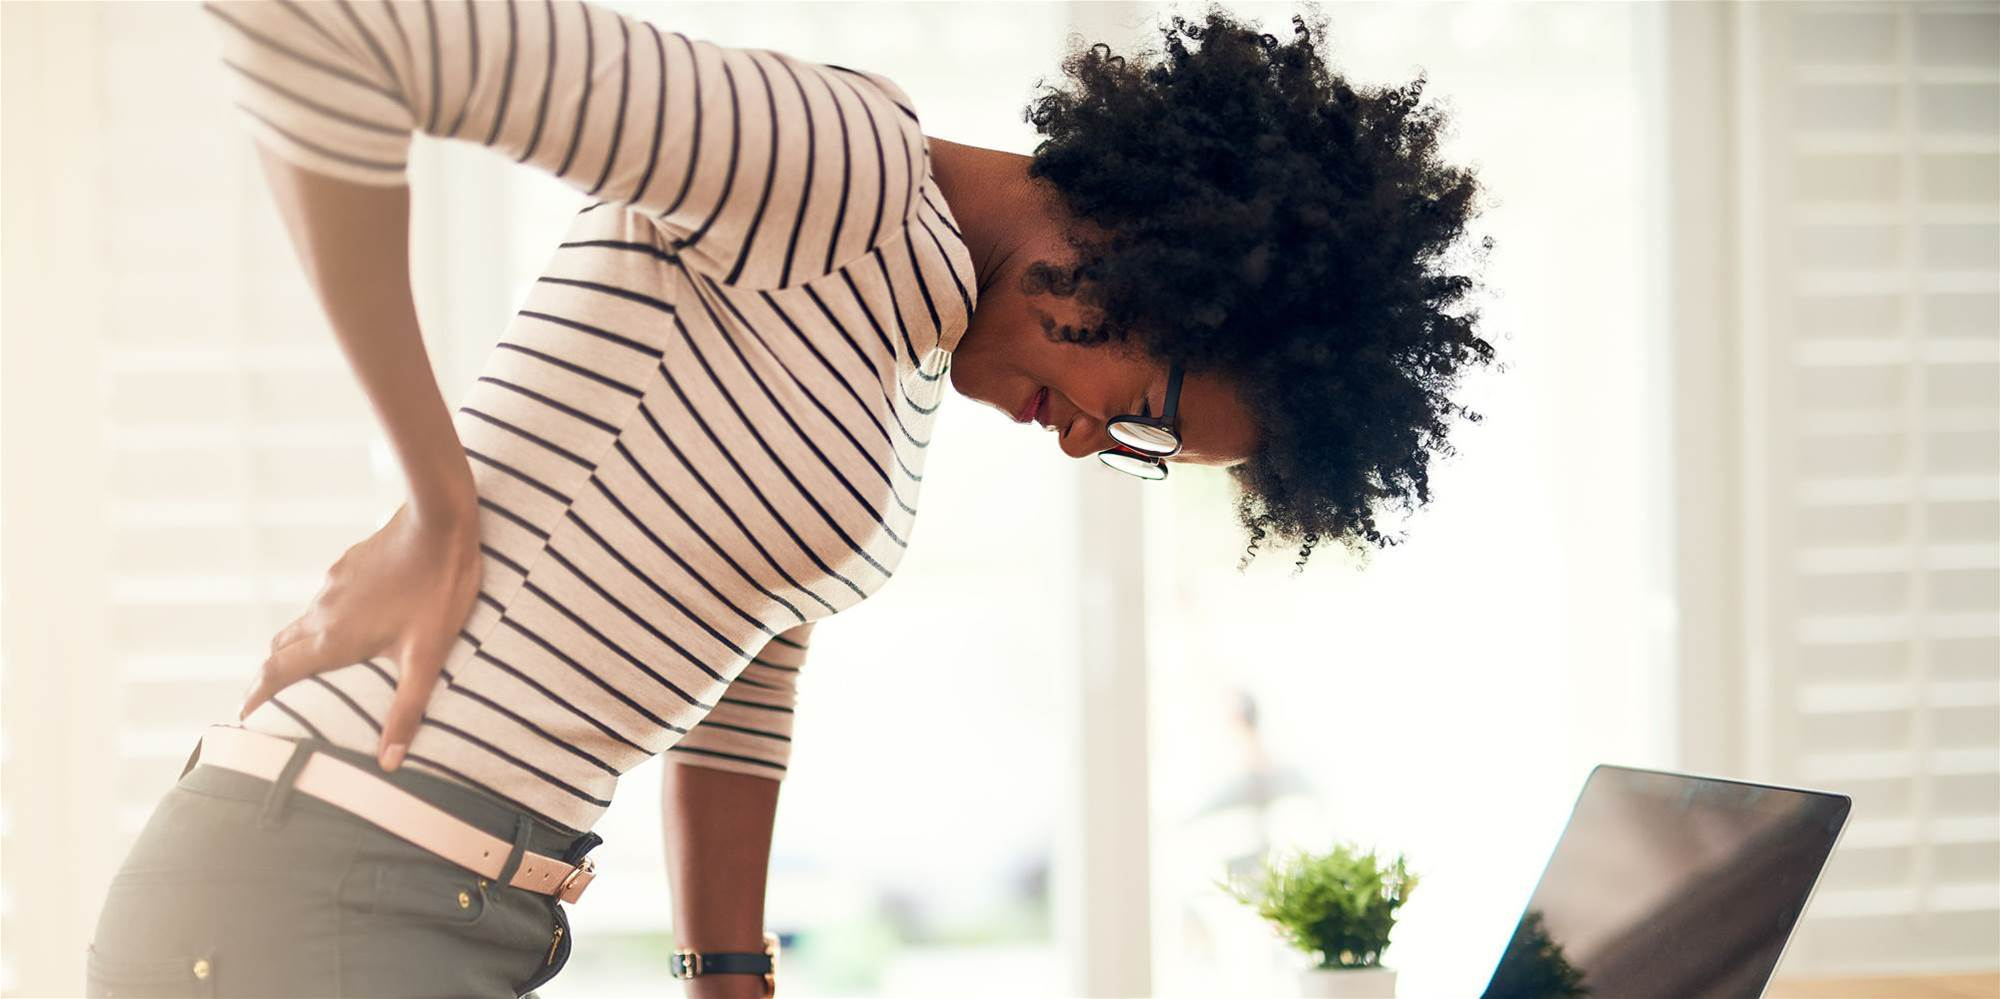 Bad Posture Isn't Why Your Back Hurts, Says This Physical Therapist